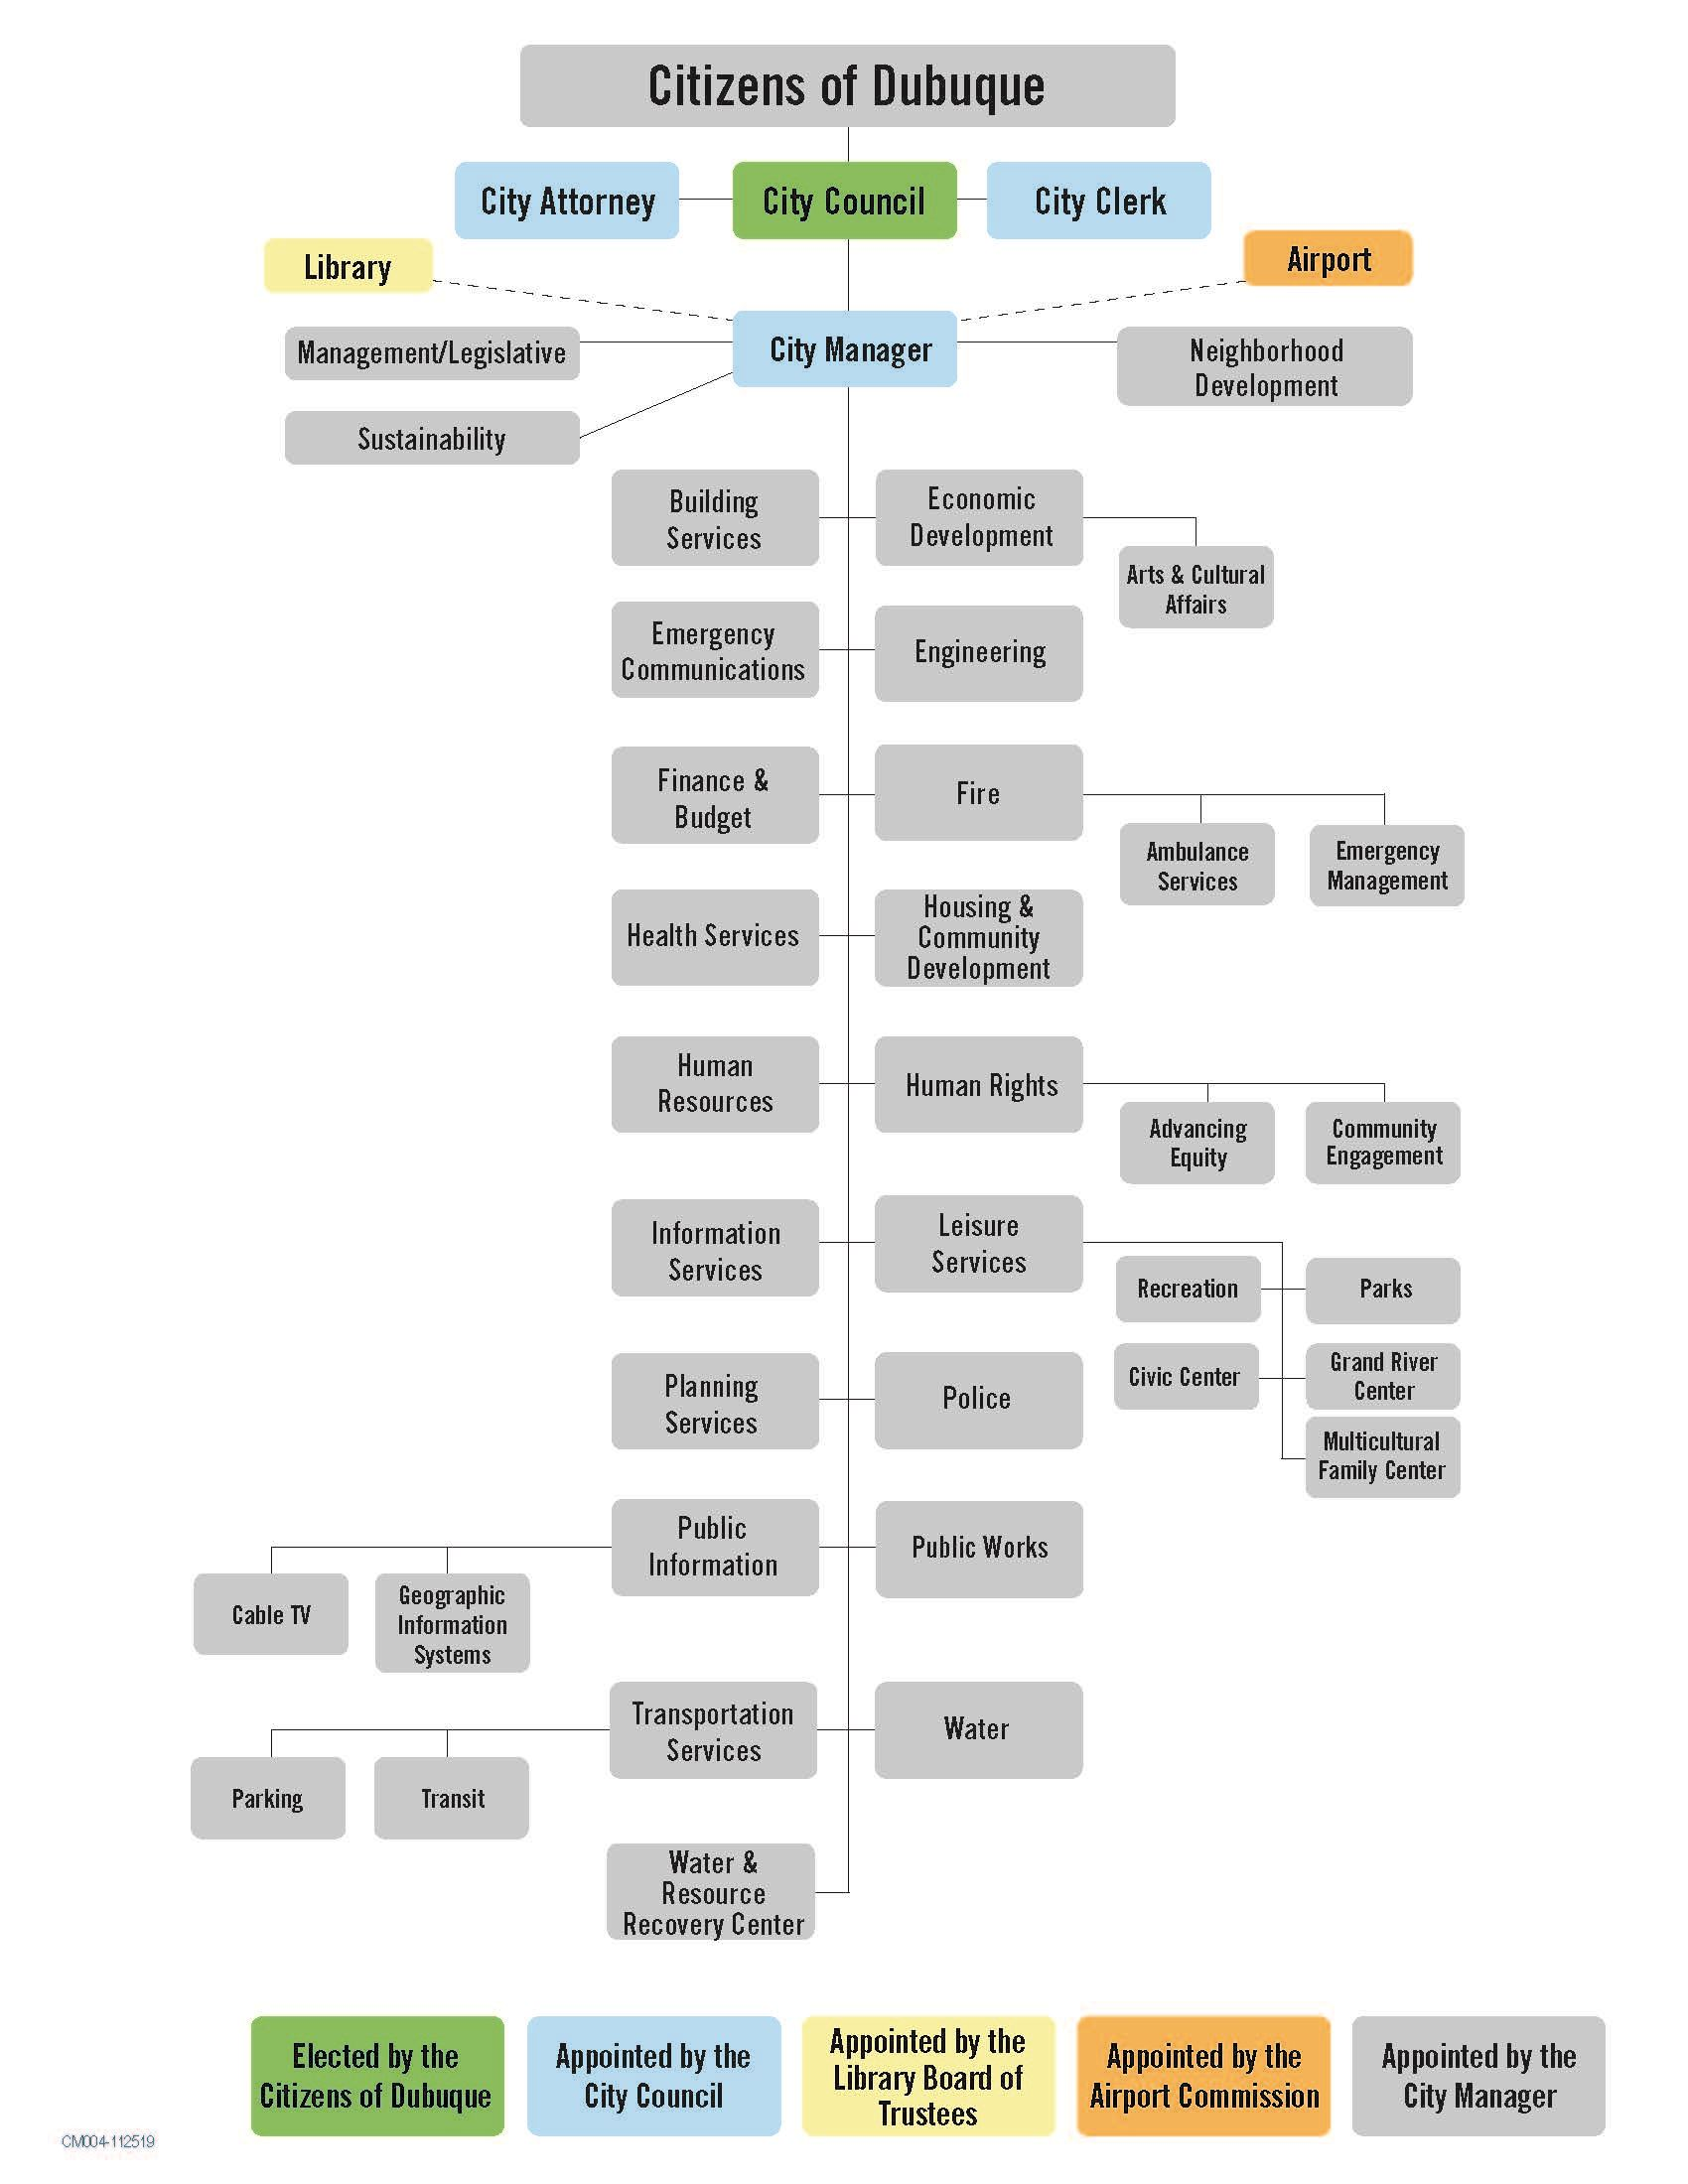 City of Dubuque Organizational Chart